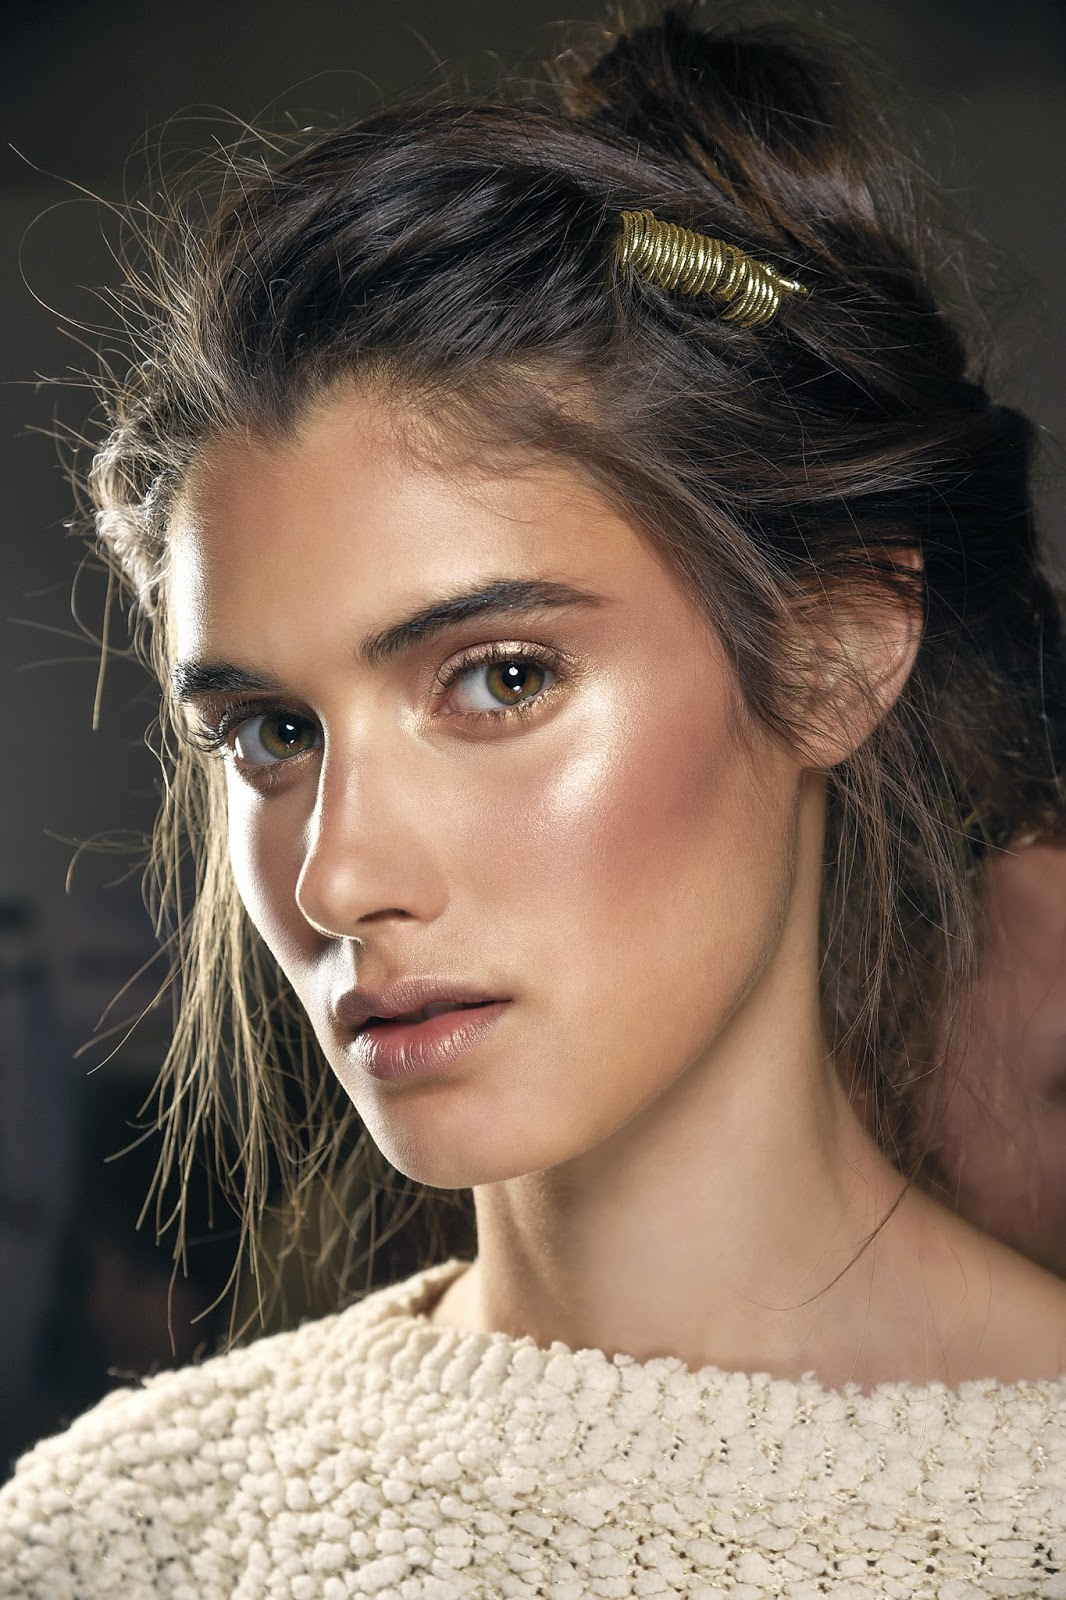 Mac Makeup Artist Portfolio: The Makeup Box: S/S 2016 Makeup Trends And A Chat With MAC